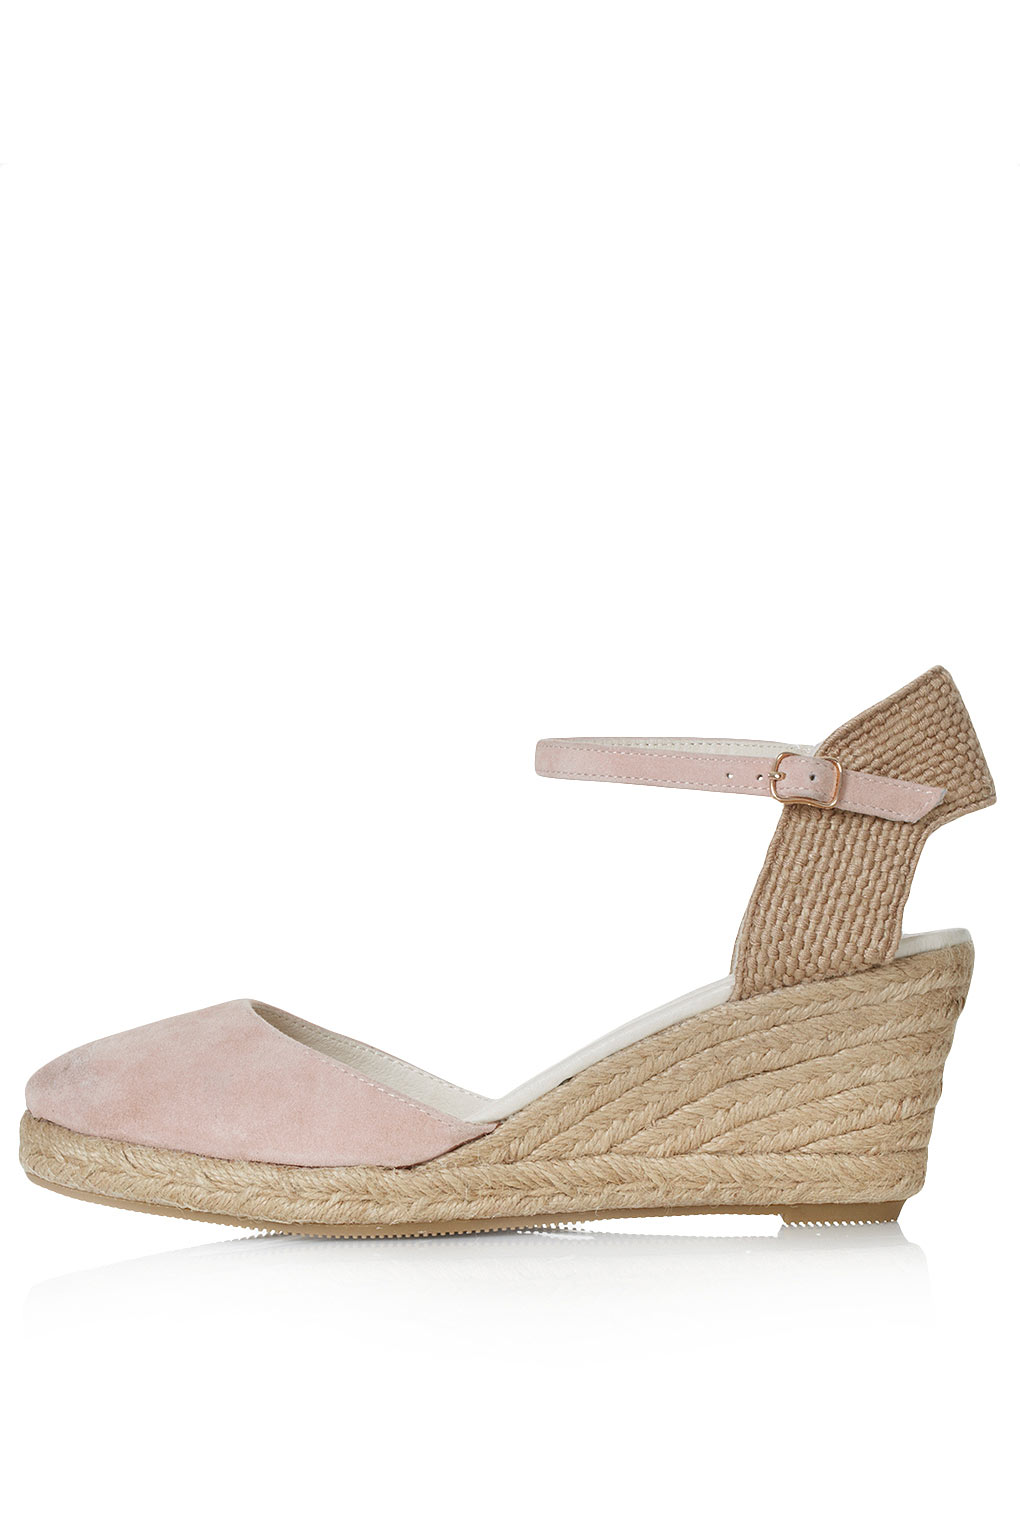 02edd1dbe29104 Lyst - TOPSHOP Wade Closed Toe Espadrilles in Natural